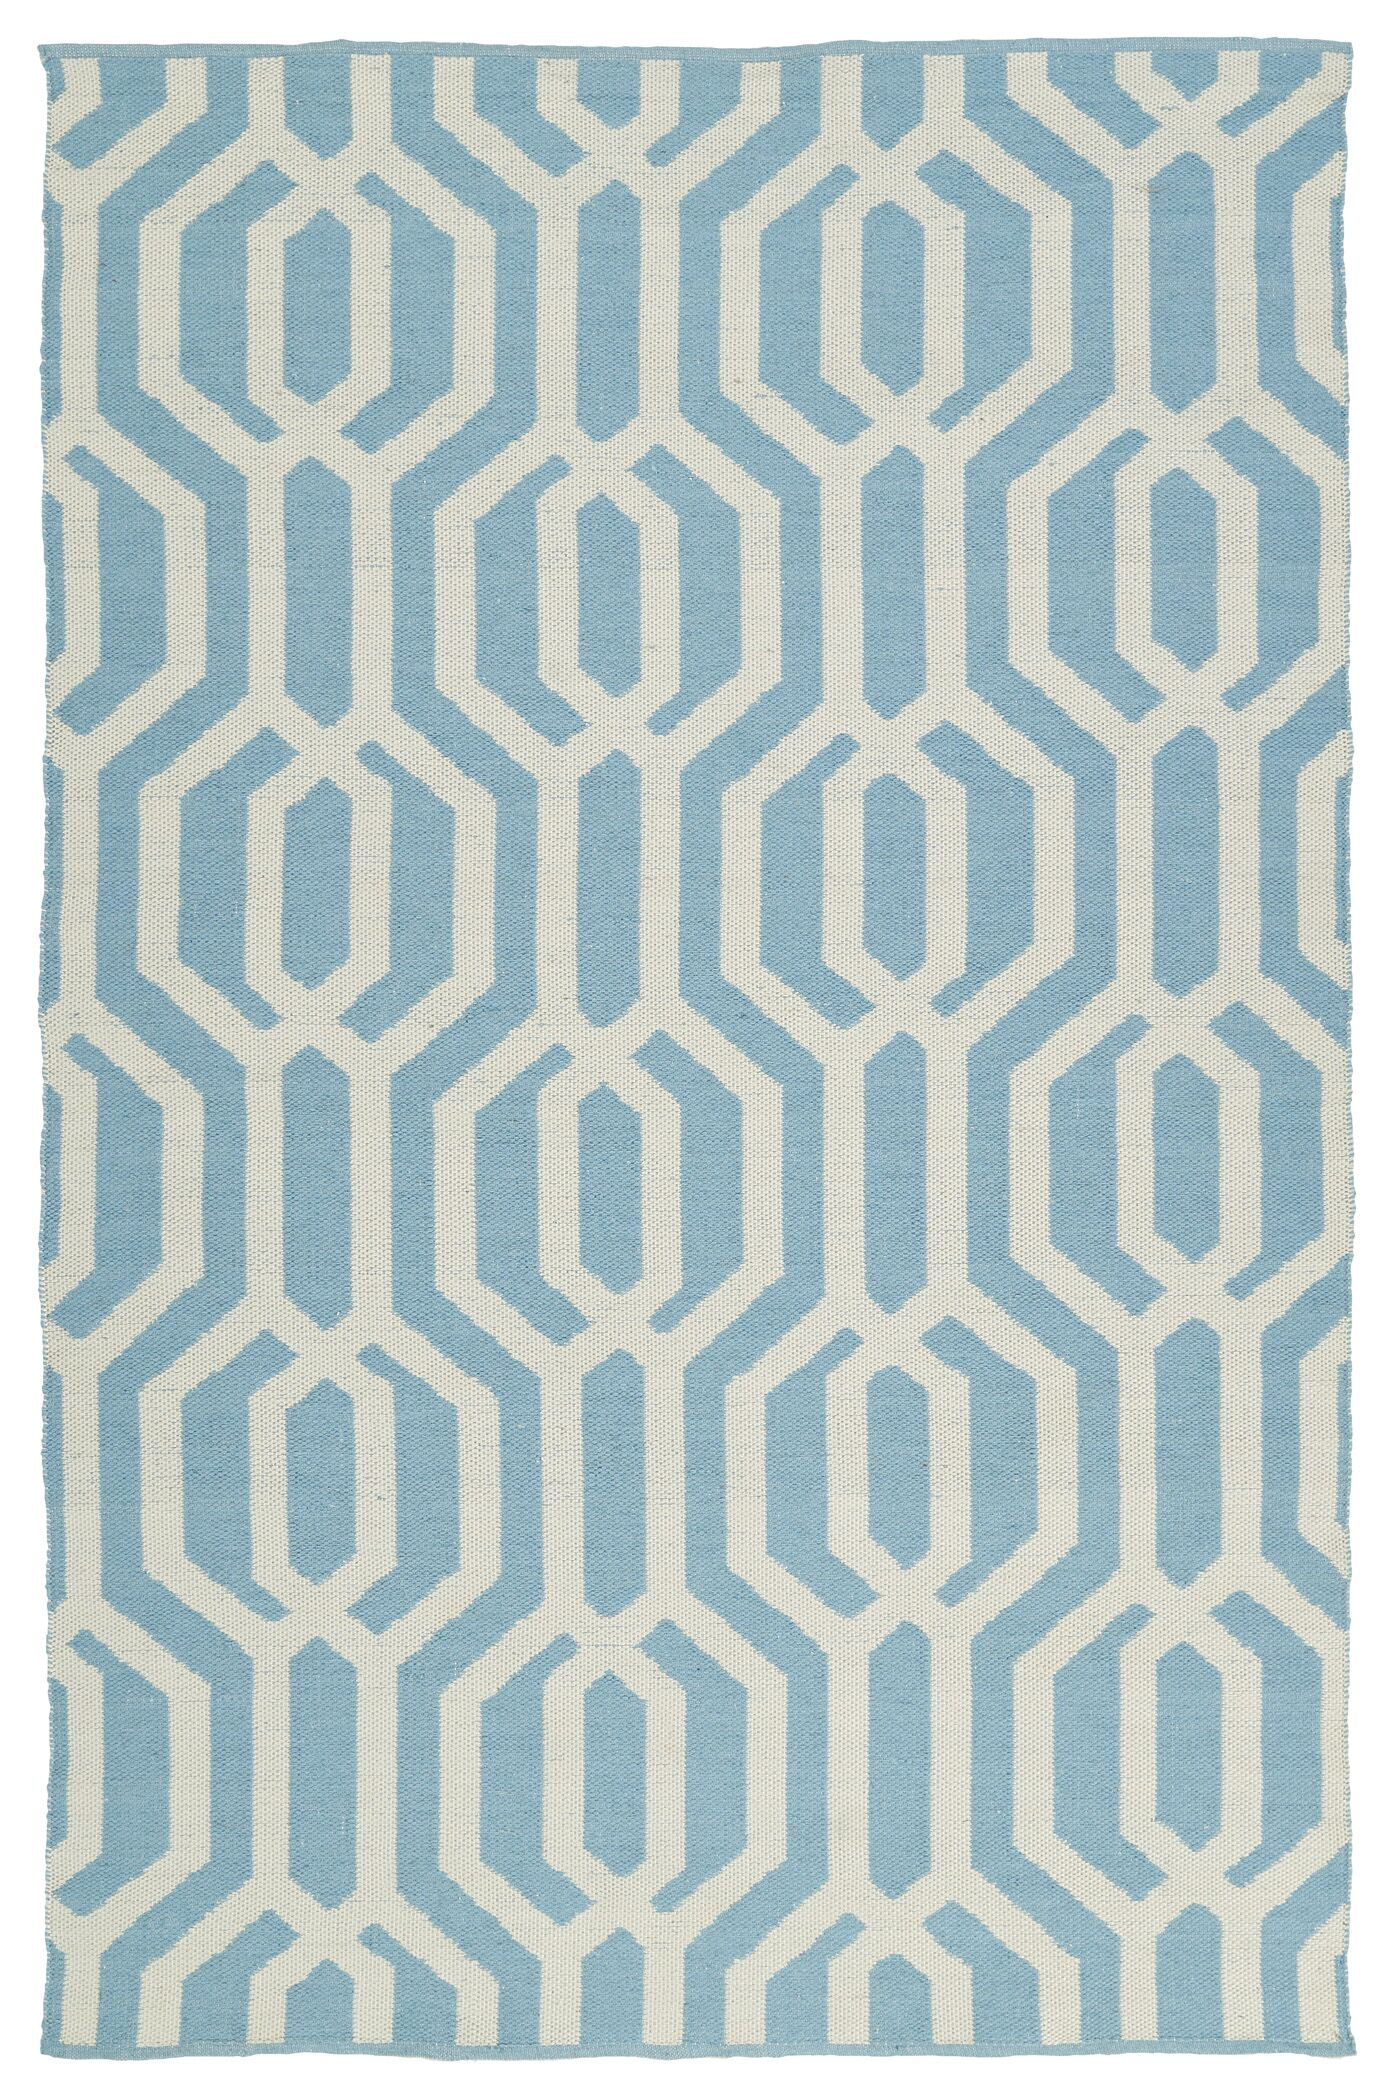 Camillei Spa/Cream Indoor/Outdoor Area Rug Rug Size: Rectangle 3' x 5'